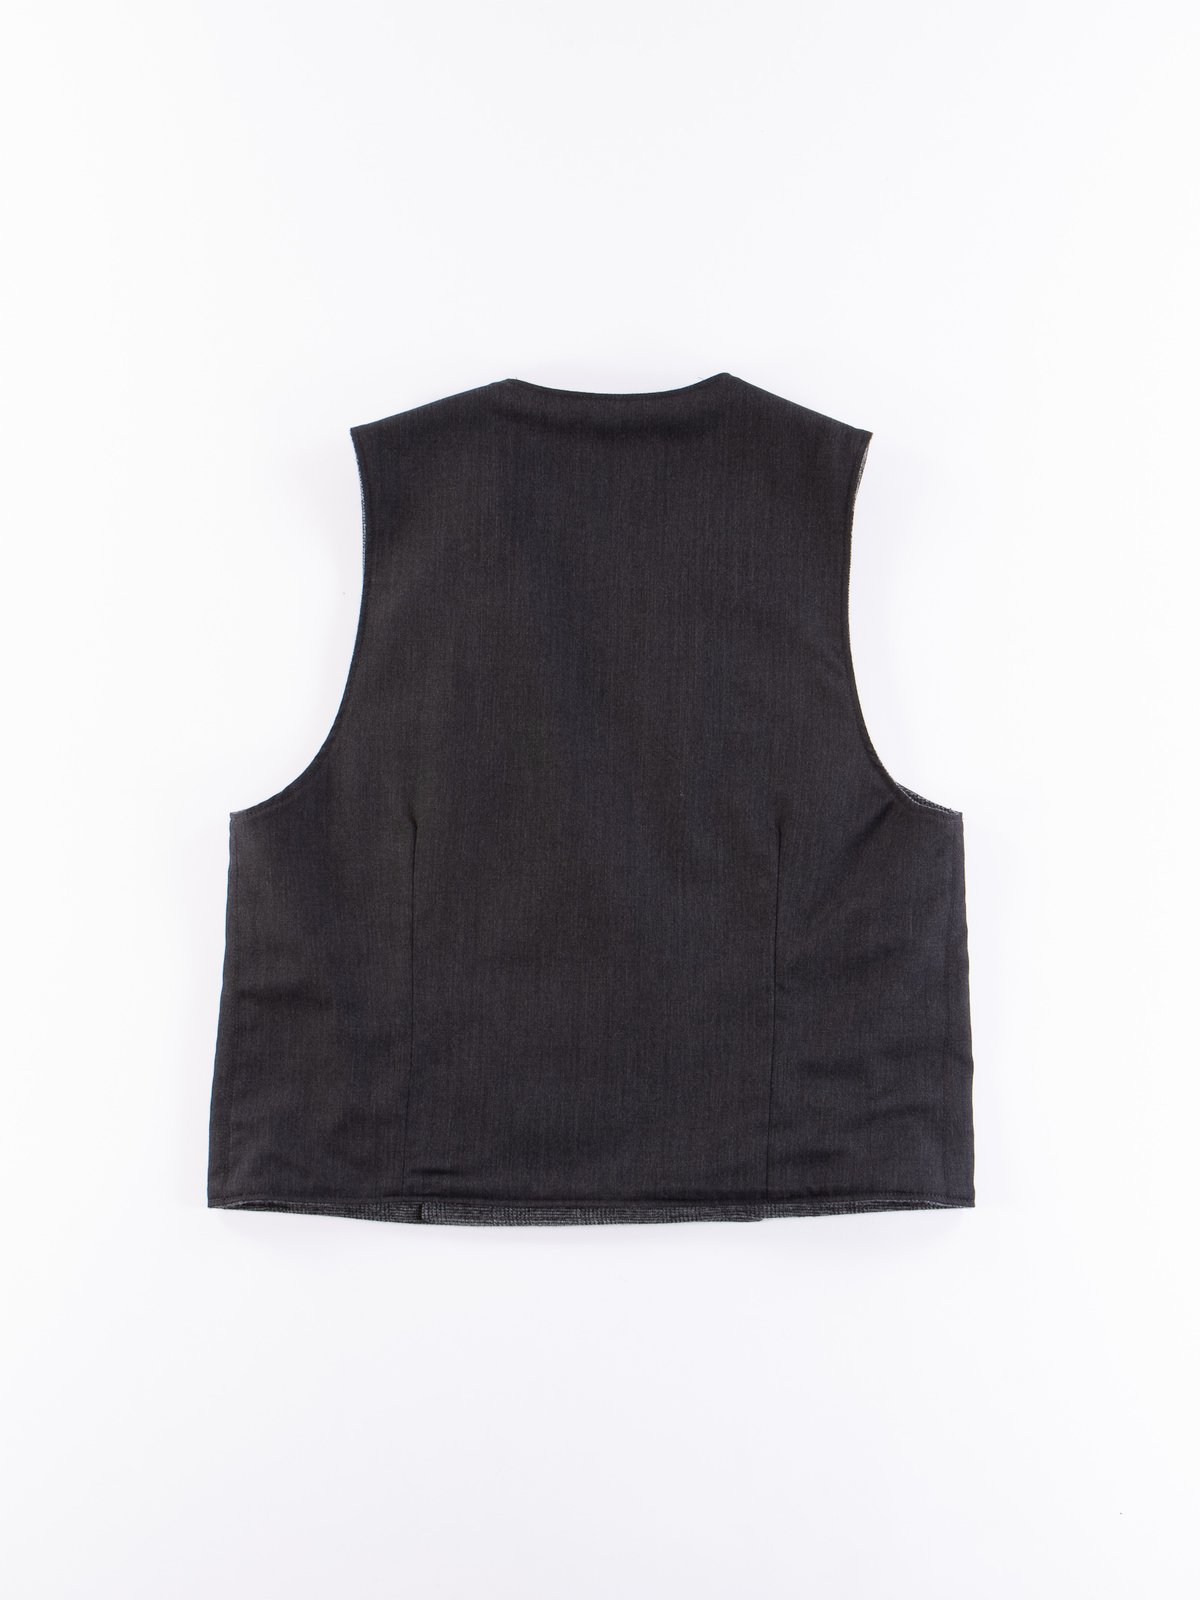 Charcoal Worsted Wool Gabardine Reversible Vest - Image 4